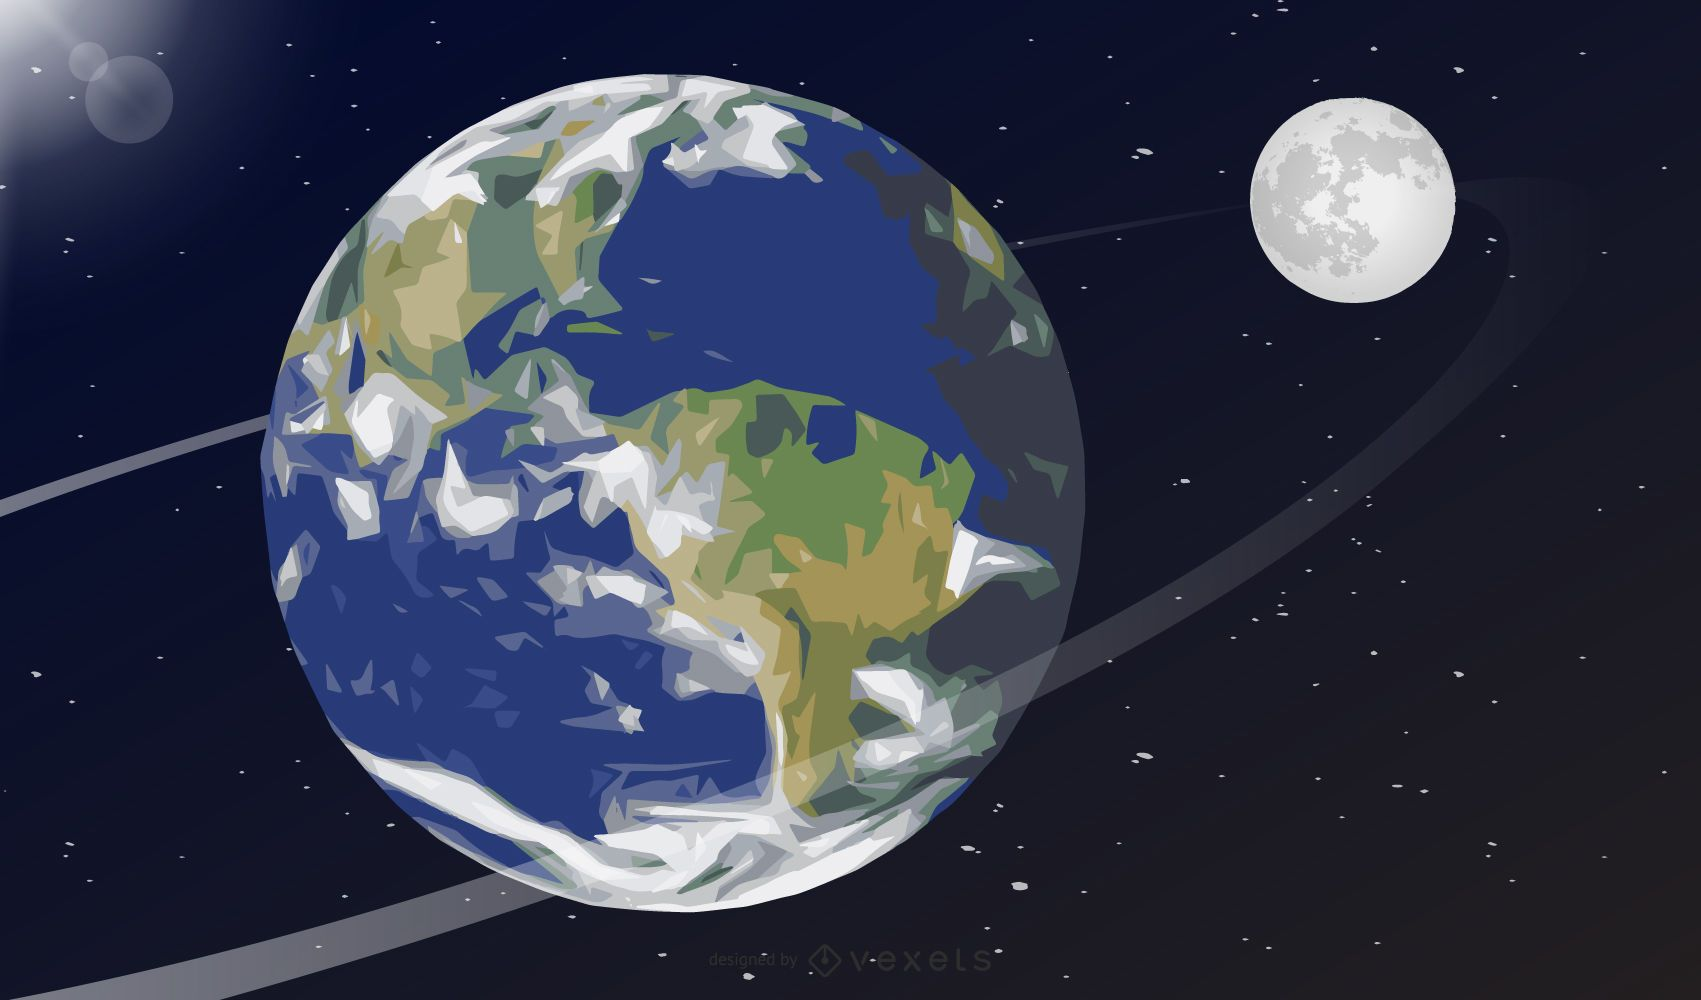 Earth and moon illustration